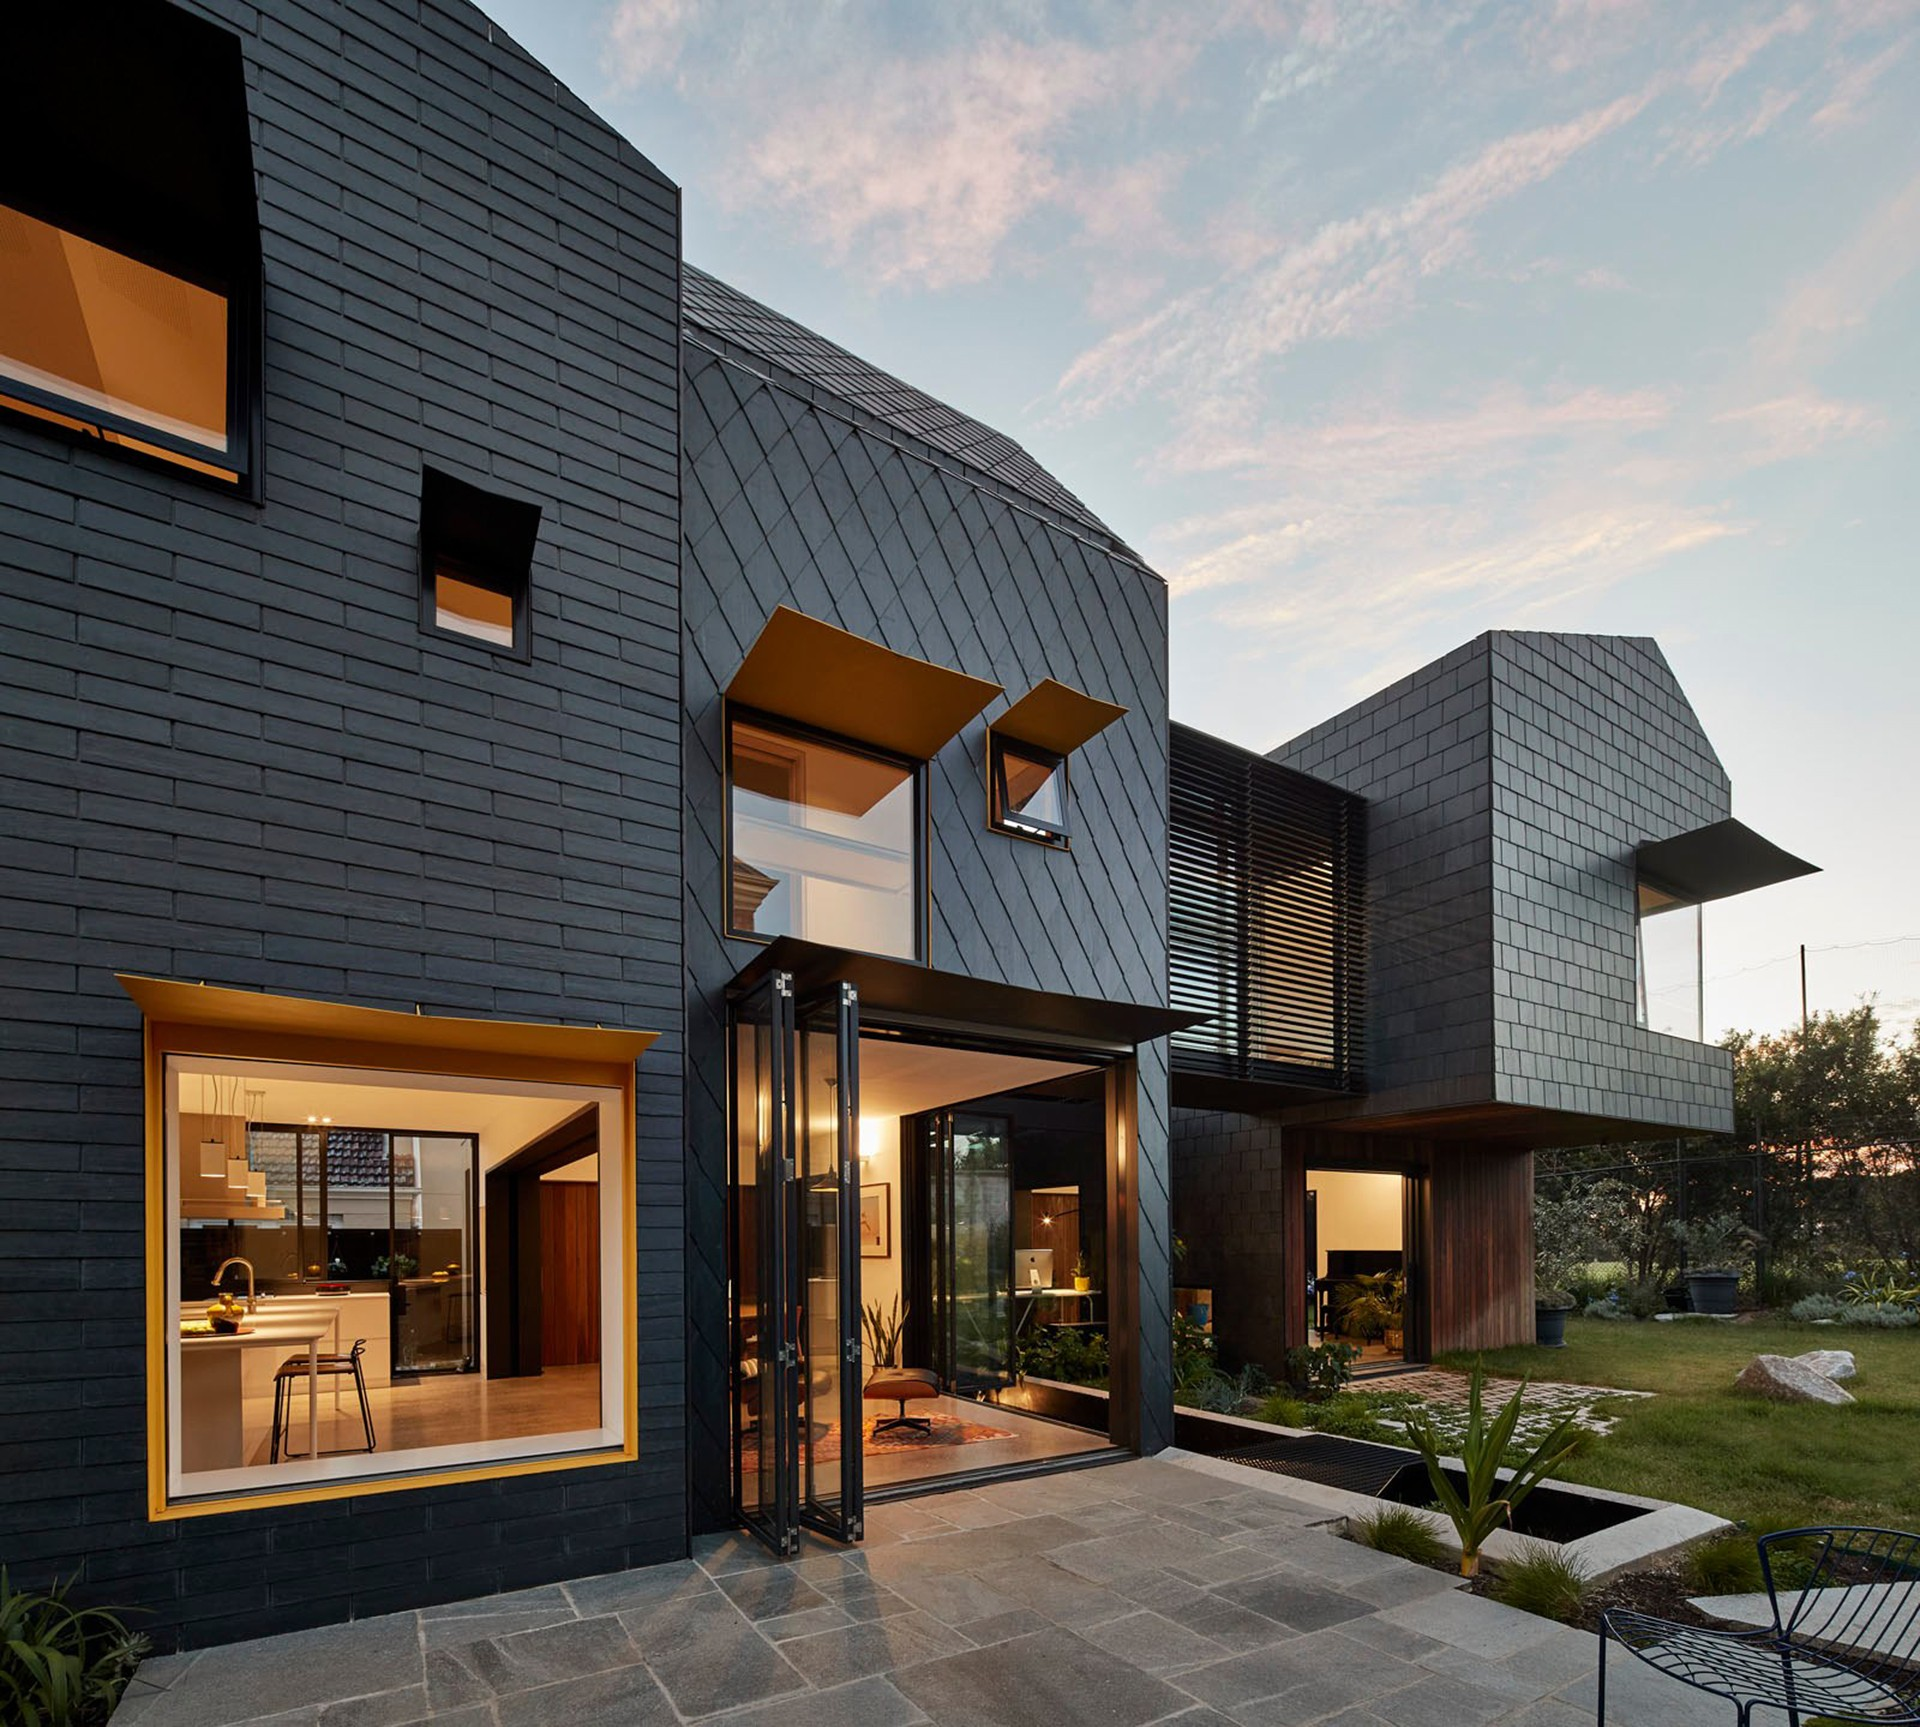 Hill House By Andrew Maynard Architects: Charles House By Austin Maynard Architects